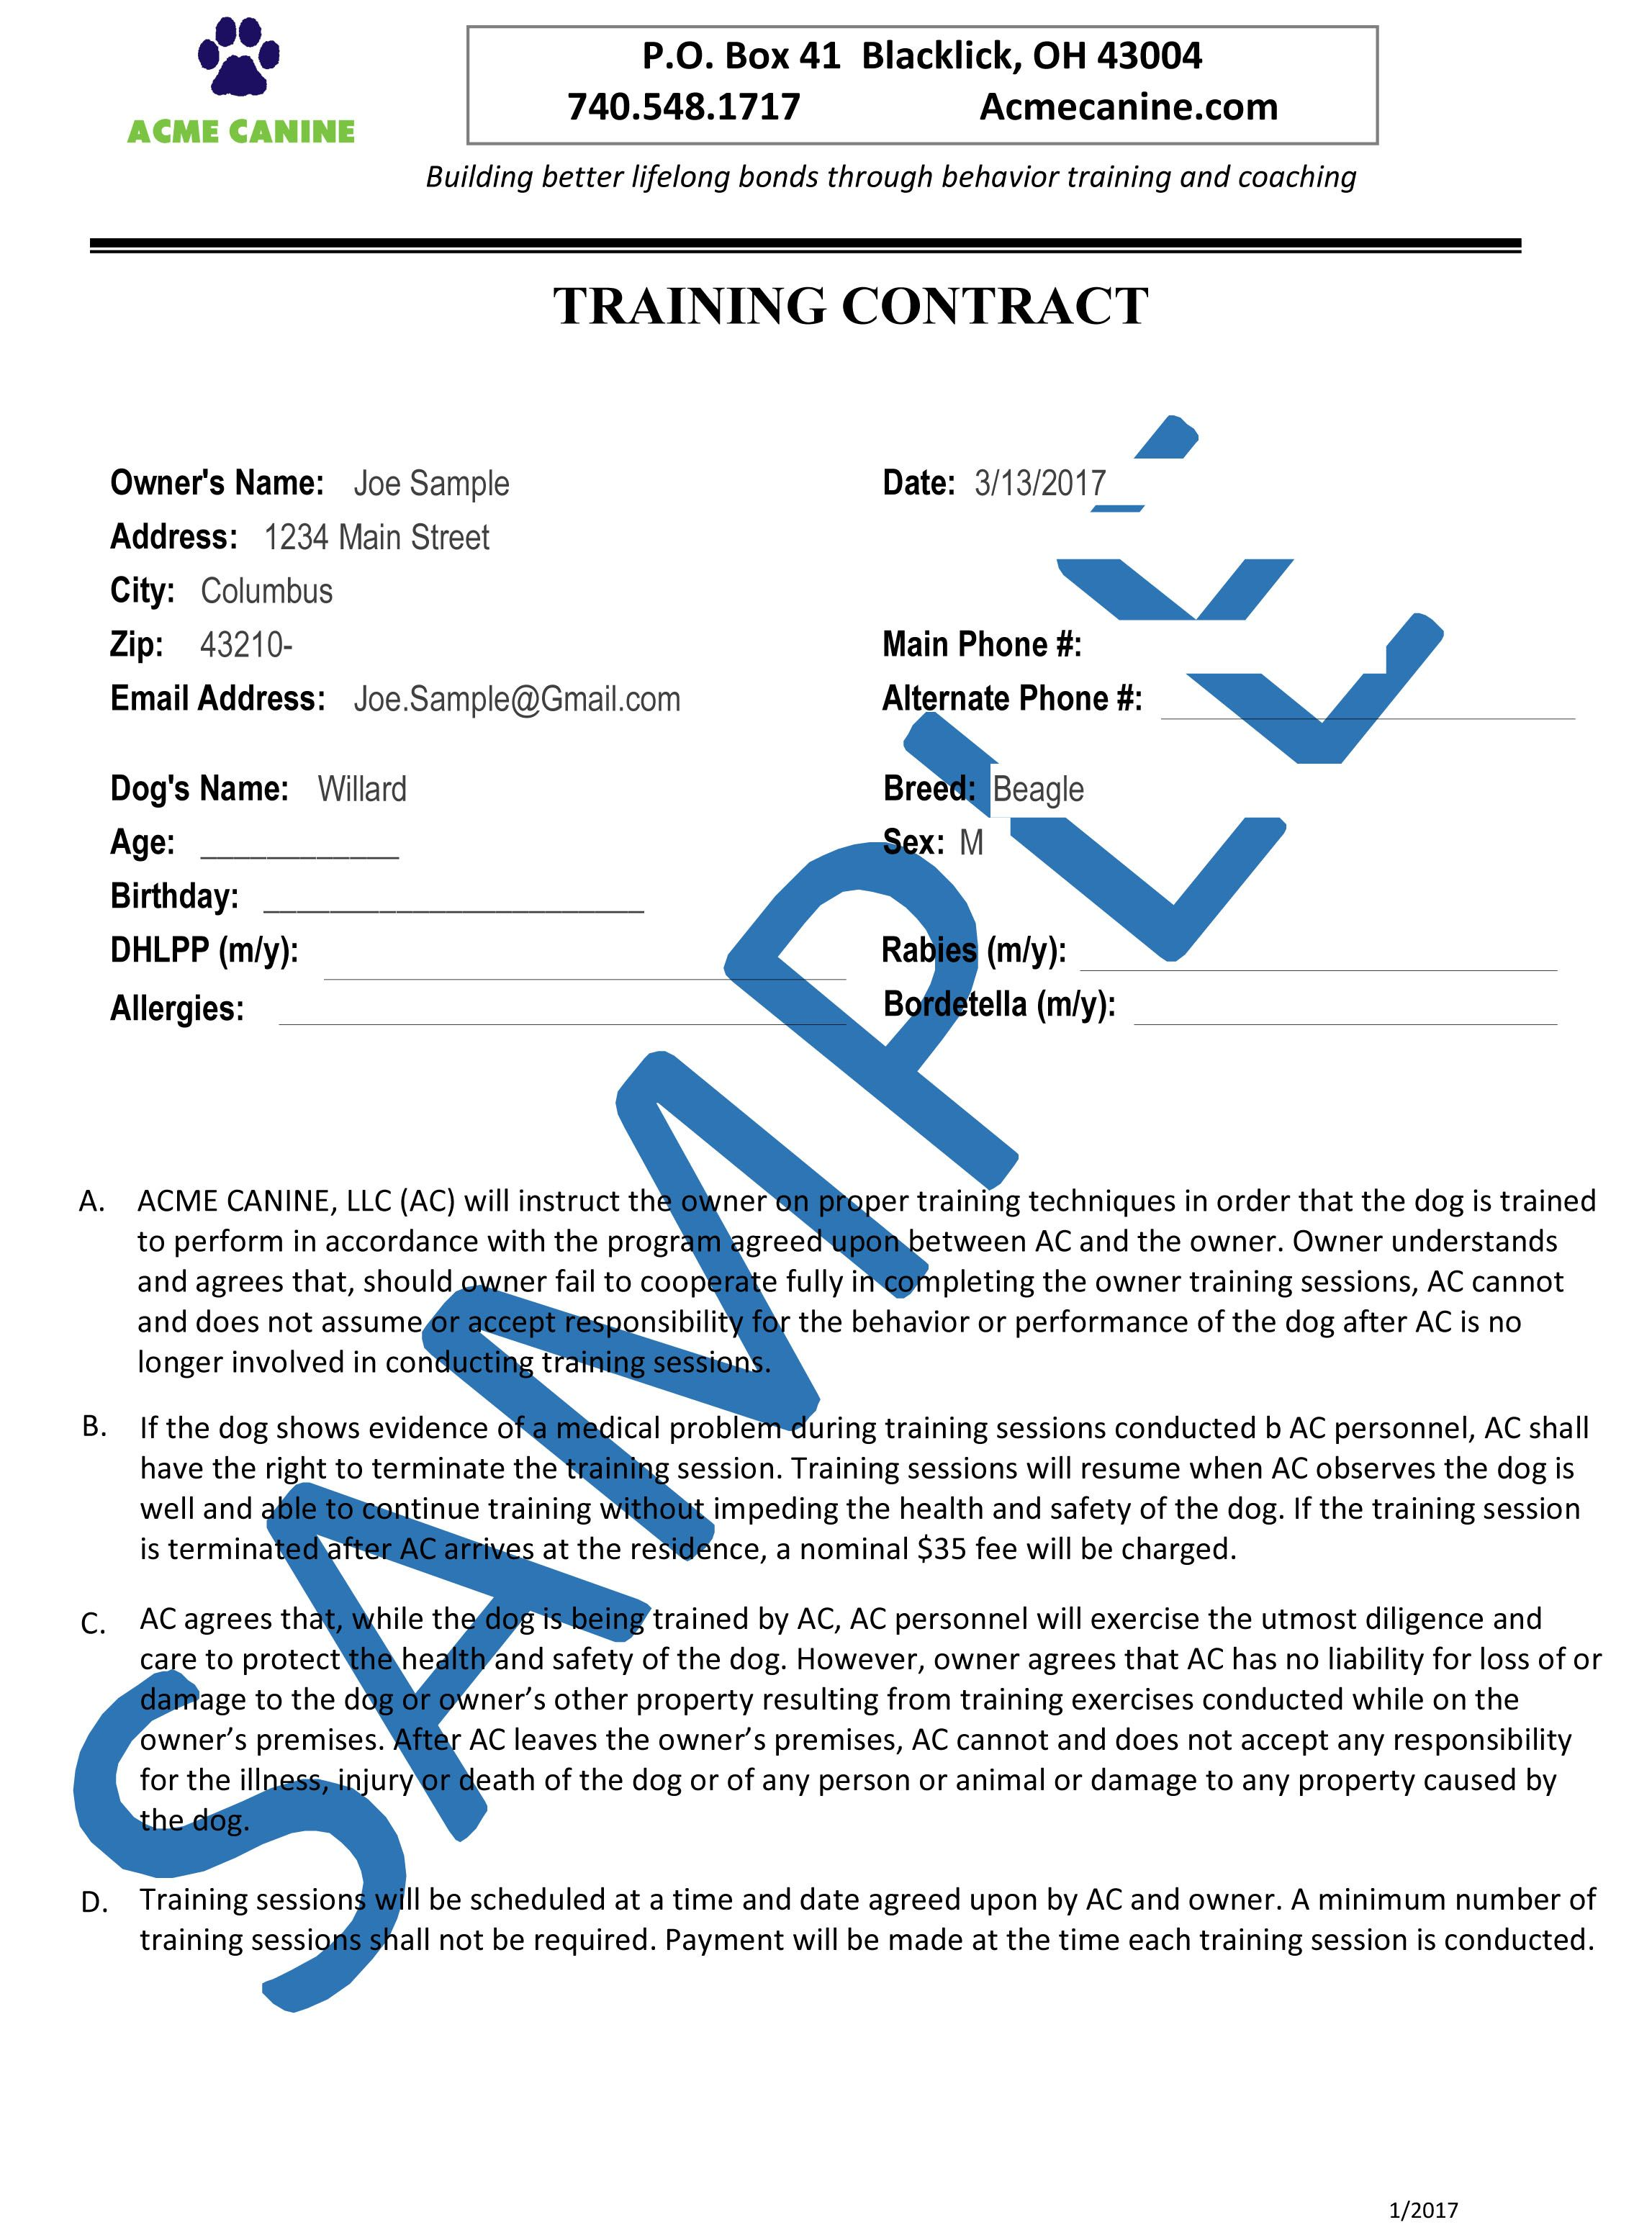 Sample Training Contract Agreement You Can Get Additional